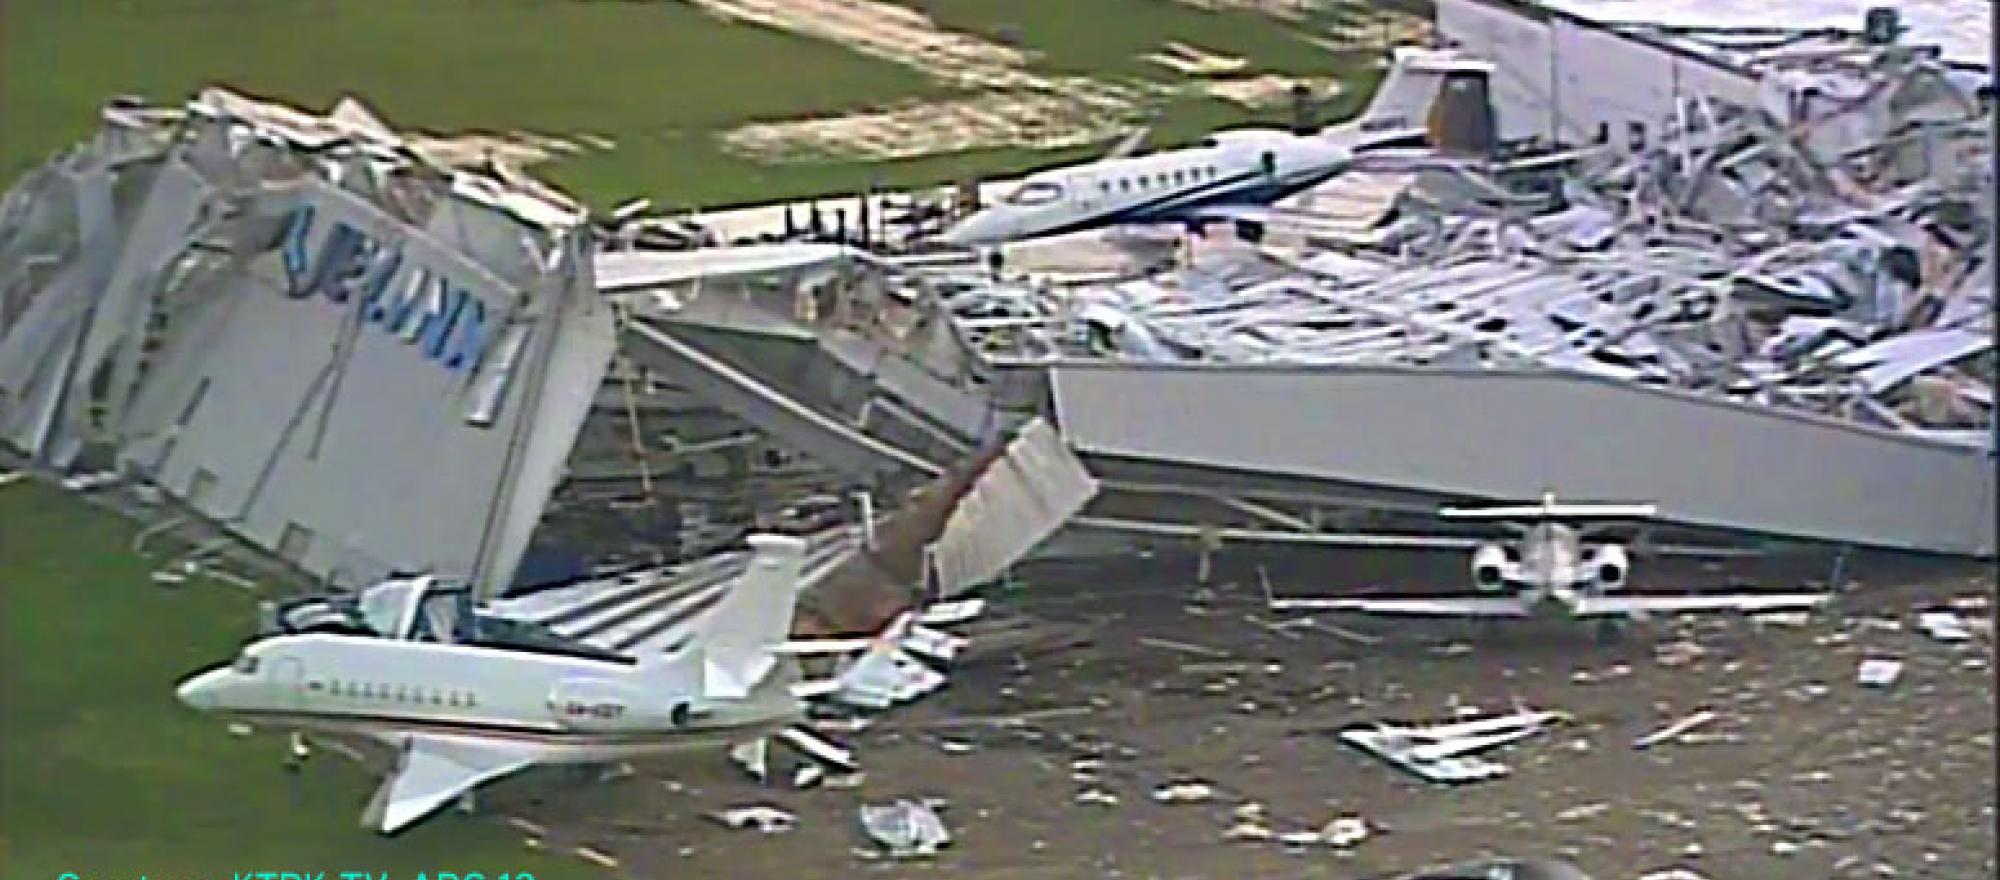 Collapsed hangar at Houston Hobby